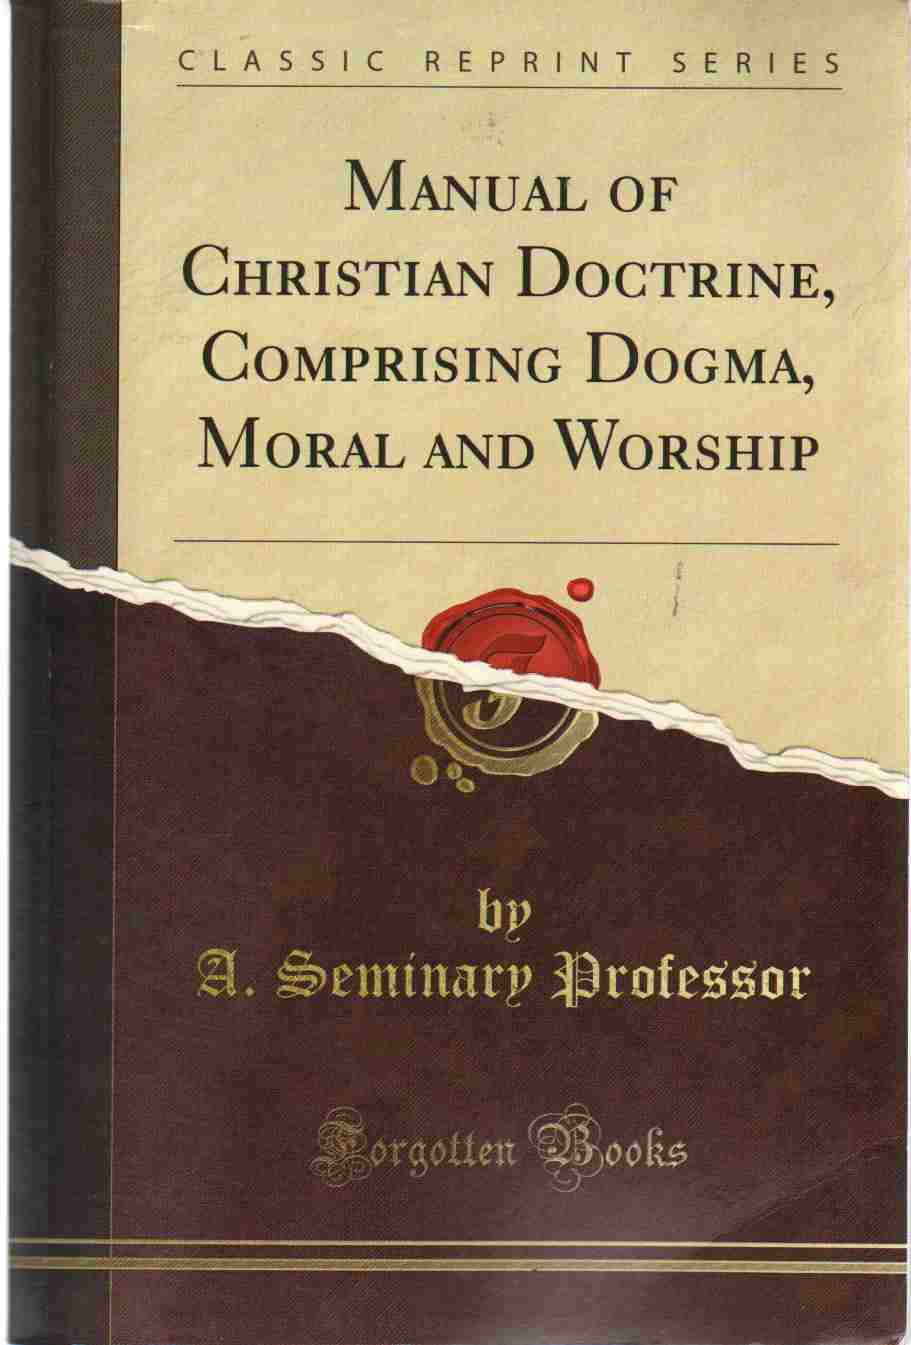 MANUAL OF CHRISTIAN DOCTRINE, COMPRISING DOGMA, MORAL AND WORSHIP, A. Seminary Professor